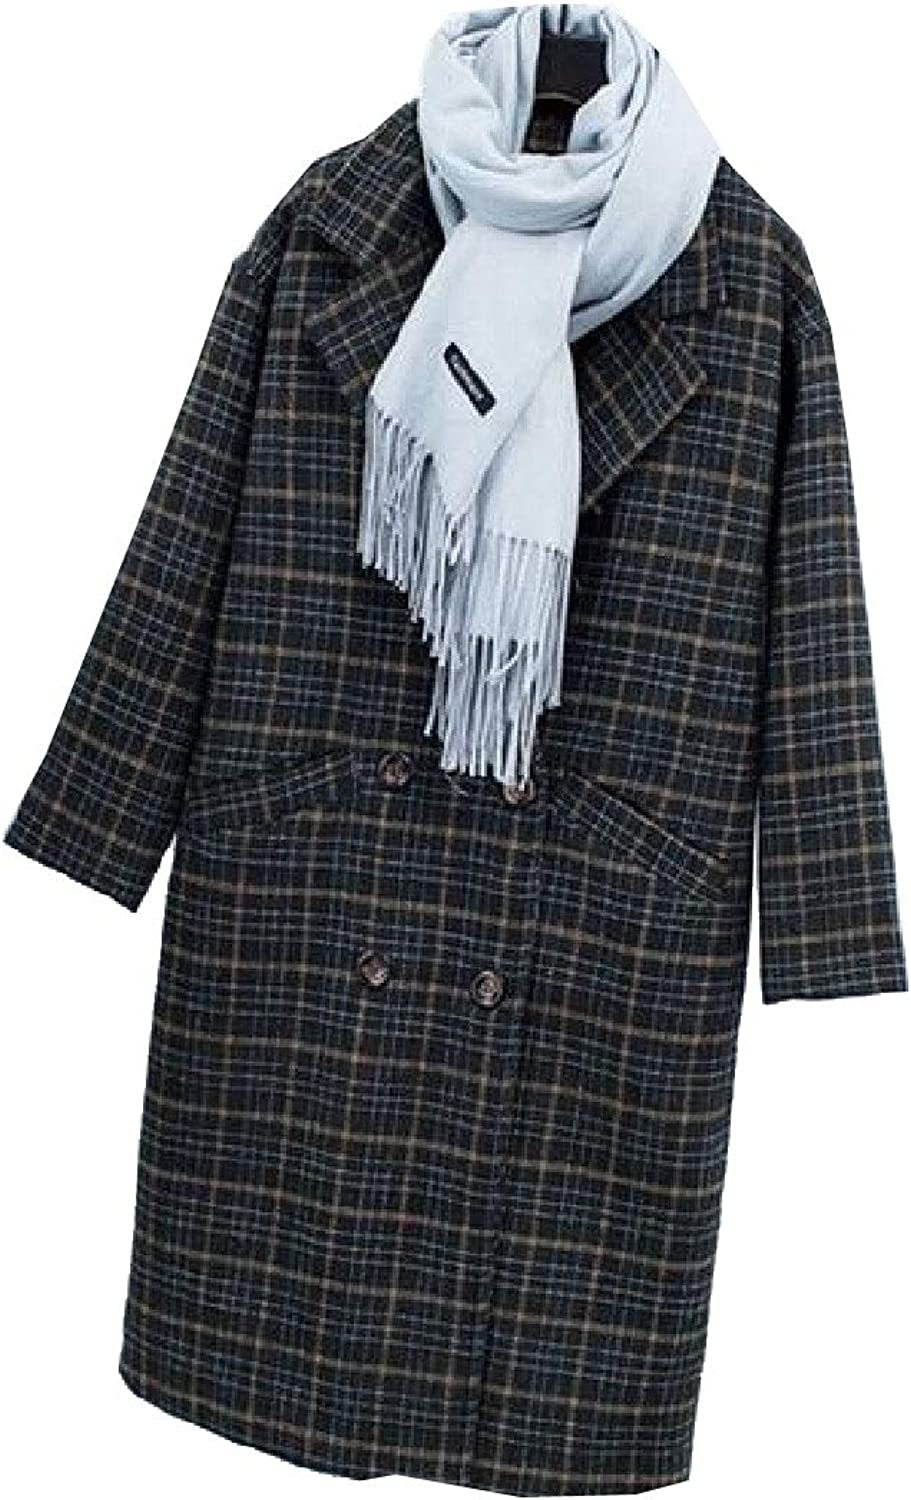 TaoNice Women's Plaid Double Breasted Baggy Mid Long Wool Trench Coat Jacket